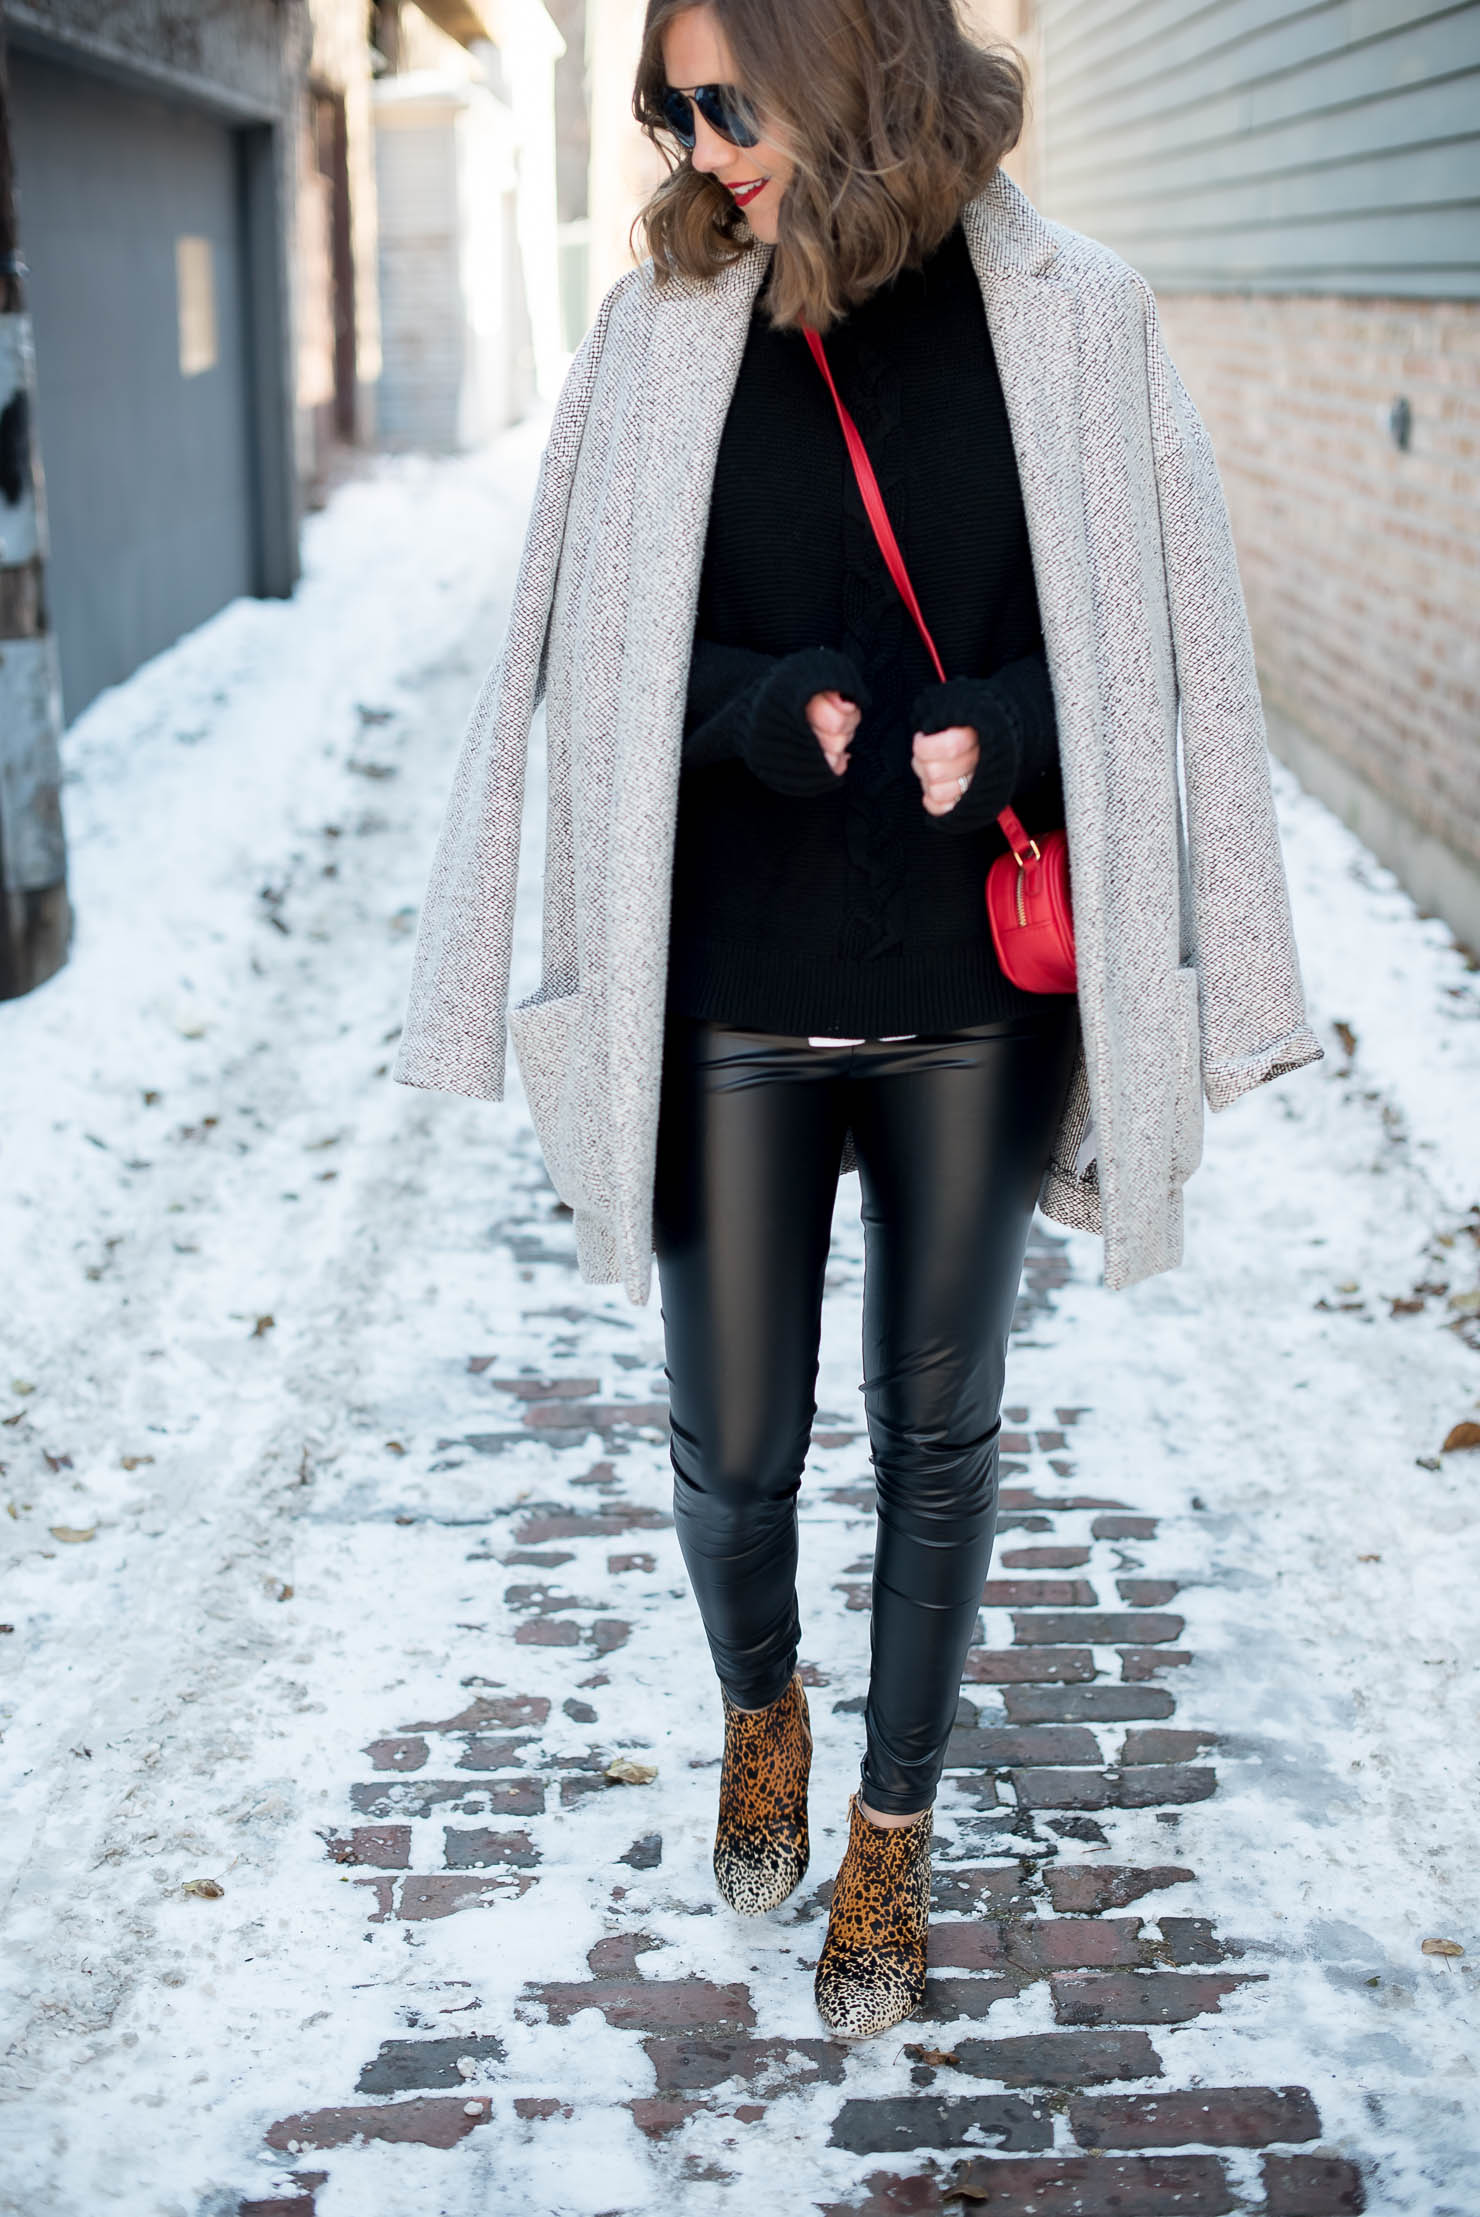 Leather Leggings Winter Outfit